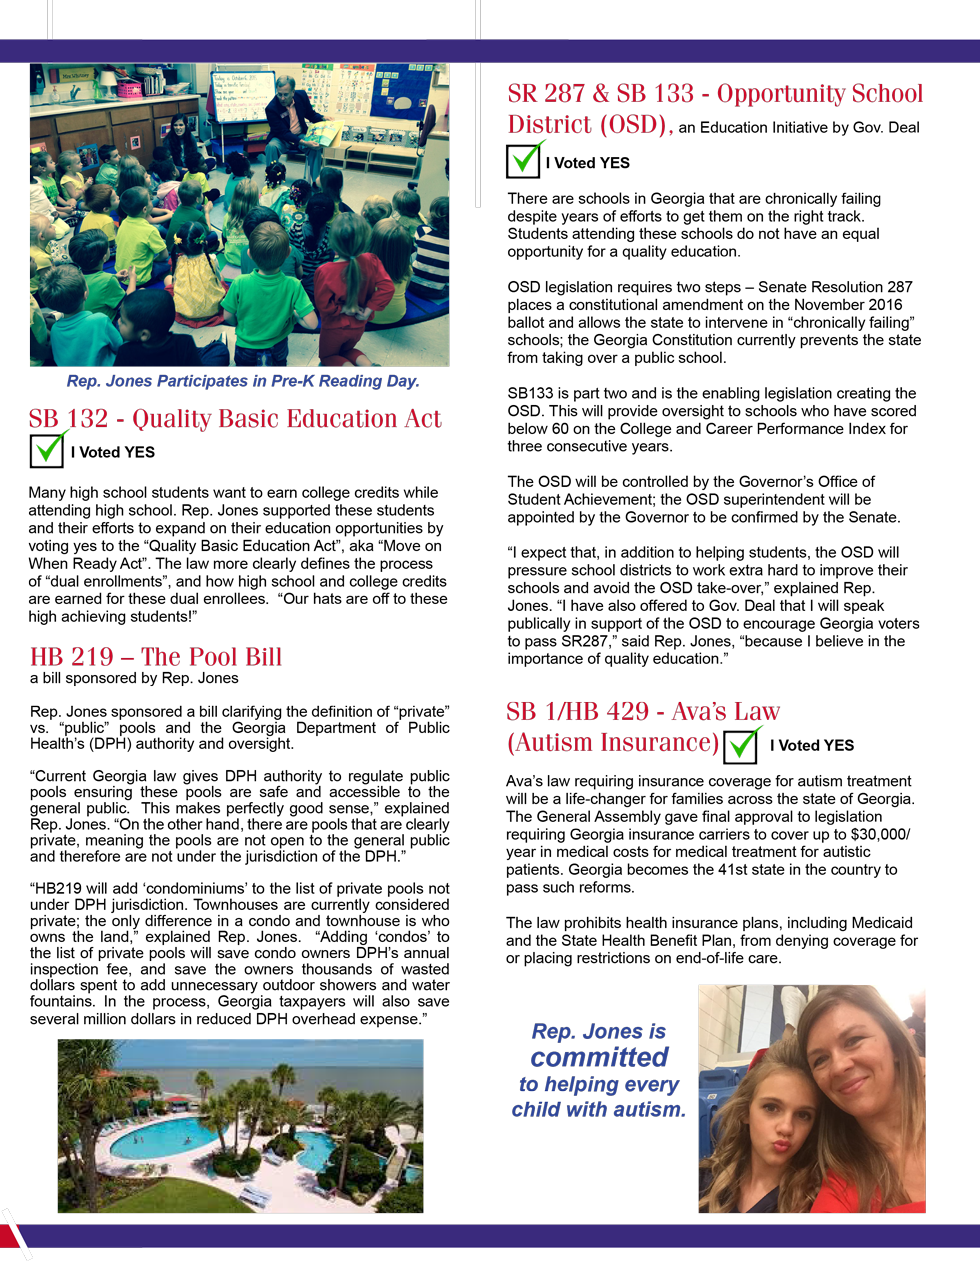 VJJ_Newsletter_Final-2-Page3.png